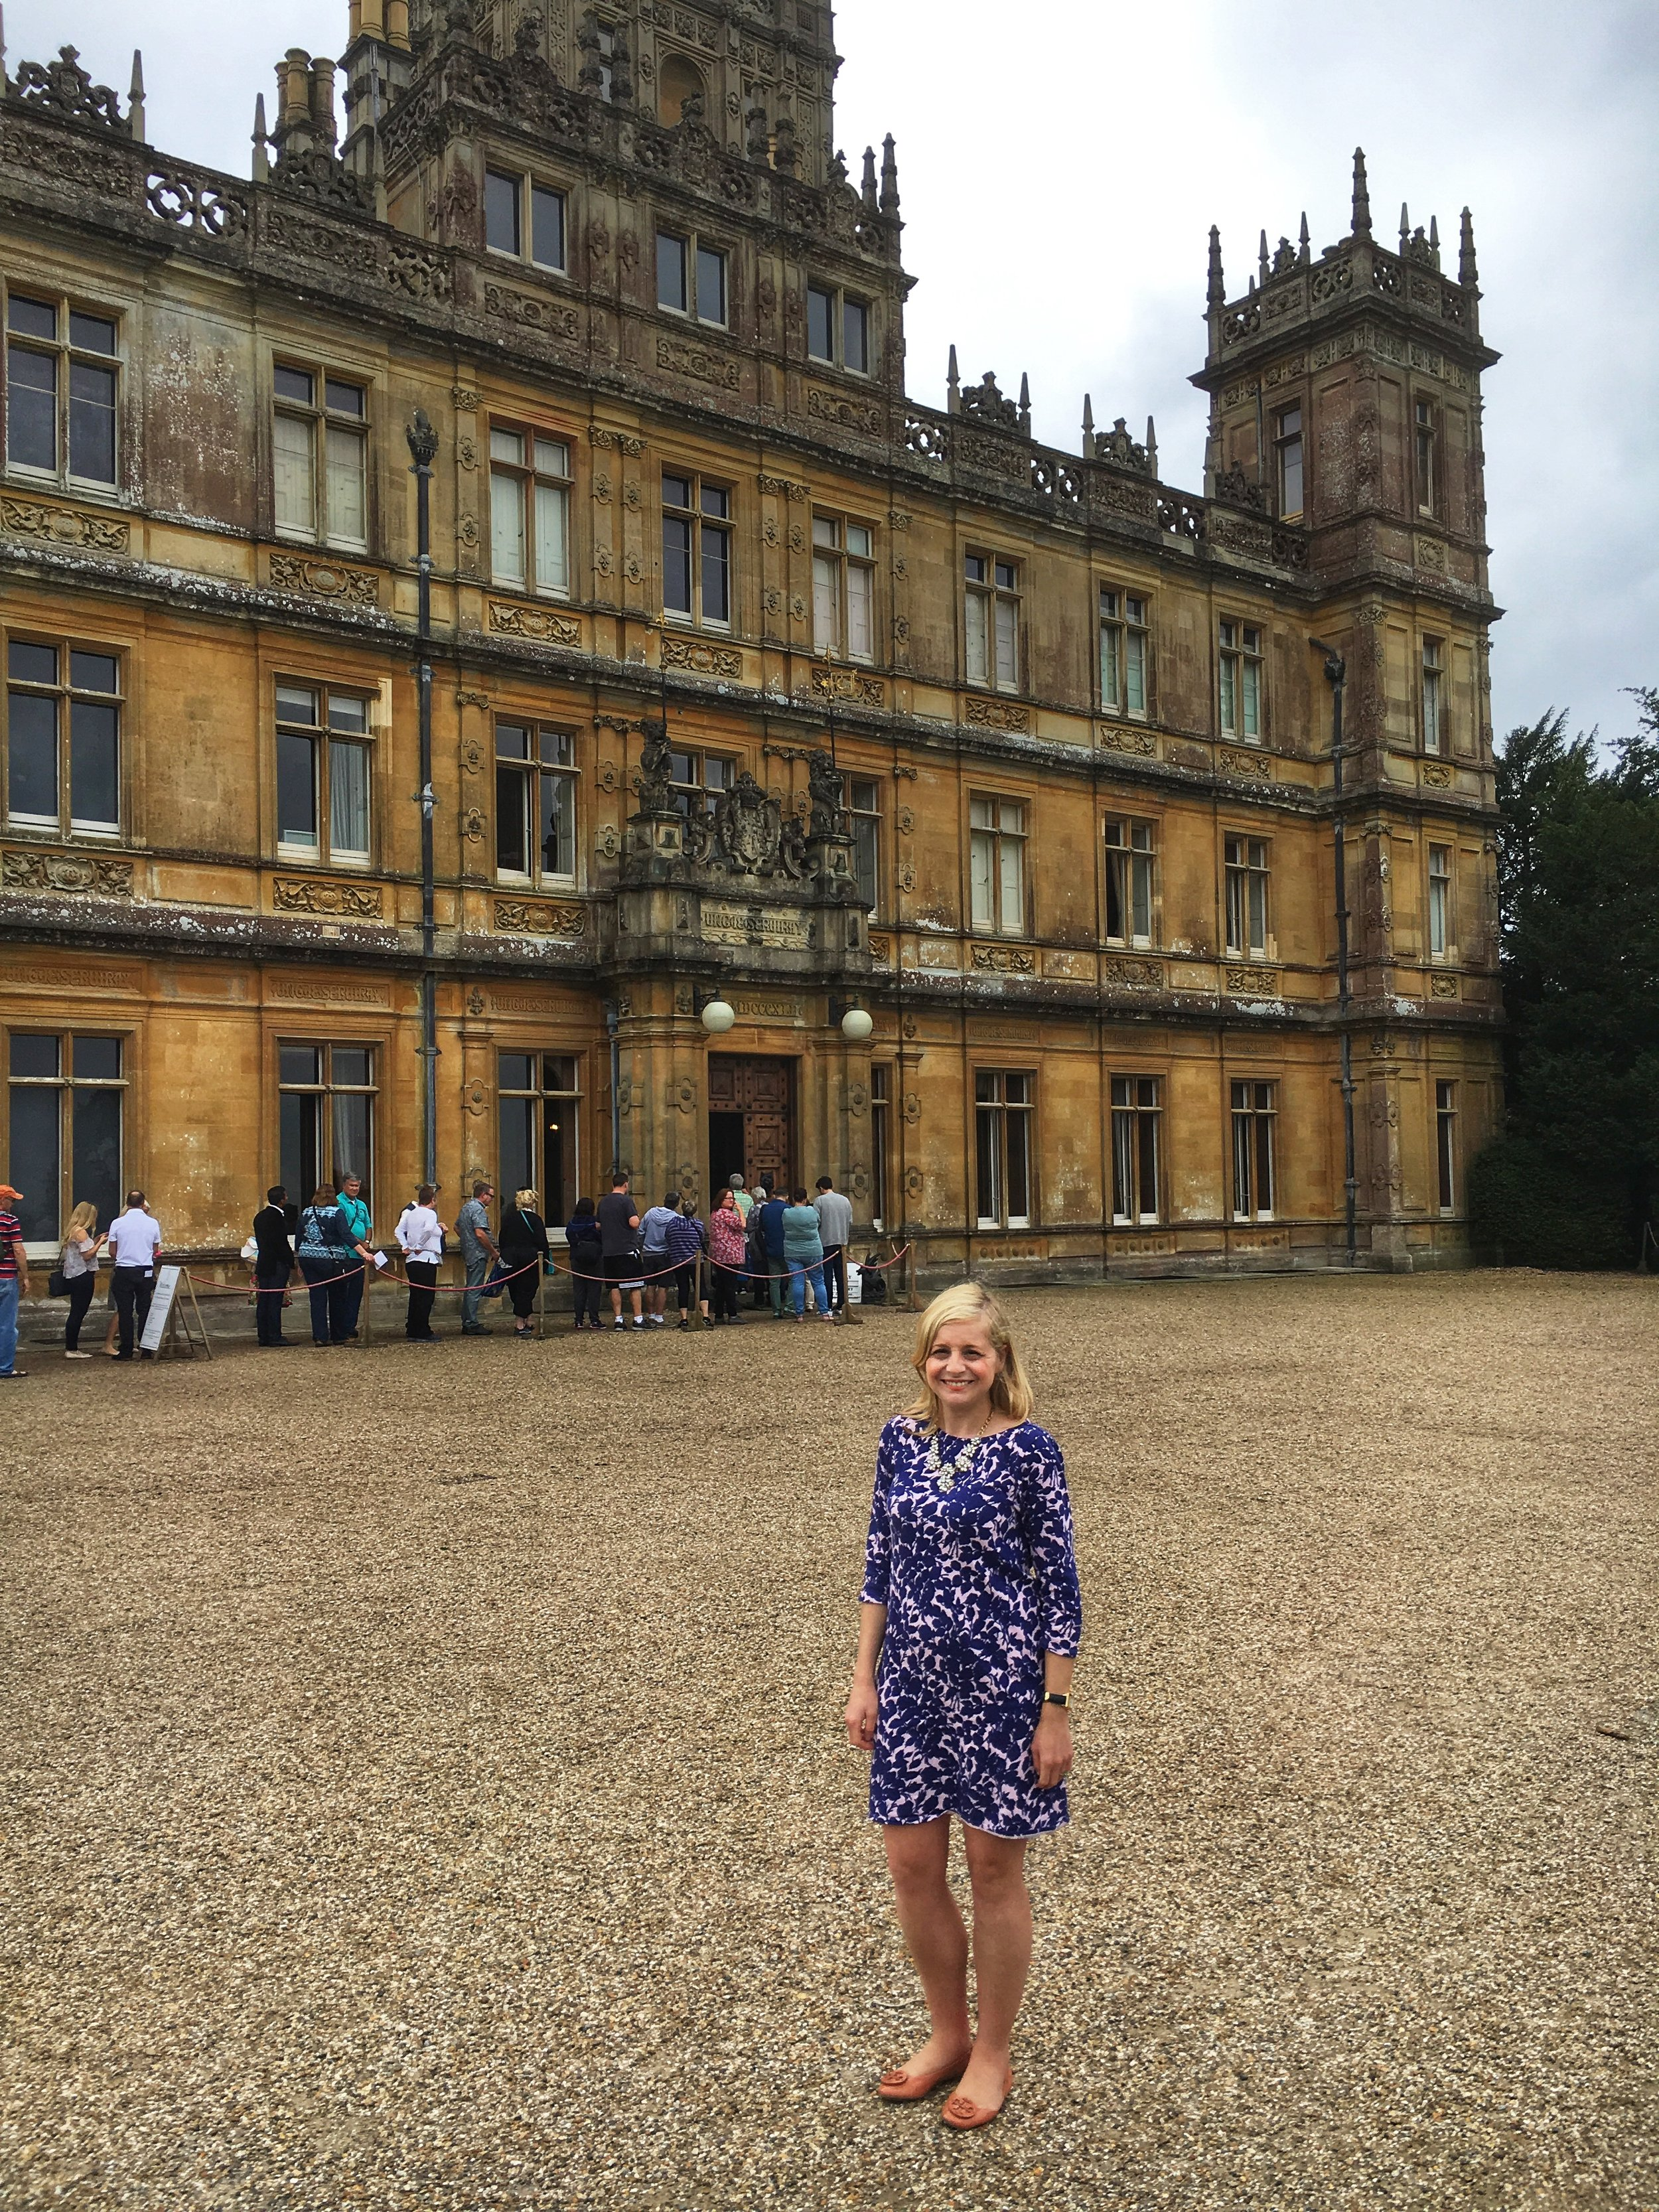 Highclere Castle ( Downton Abbey filming location )